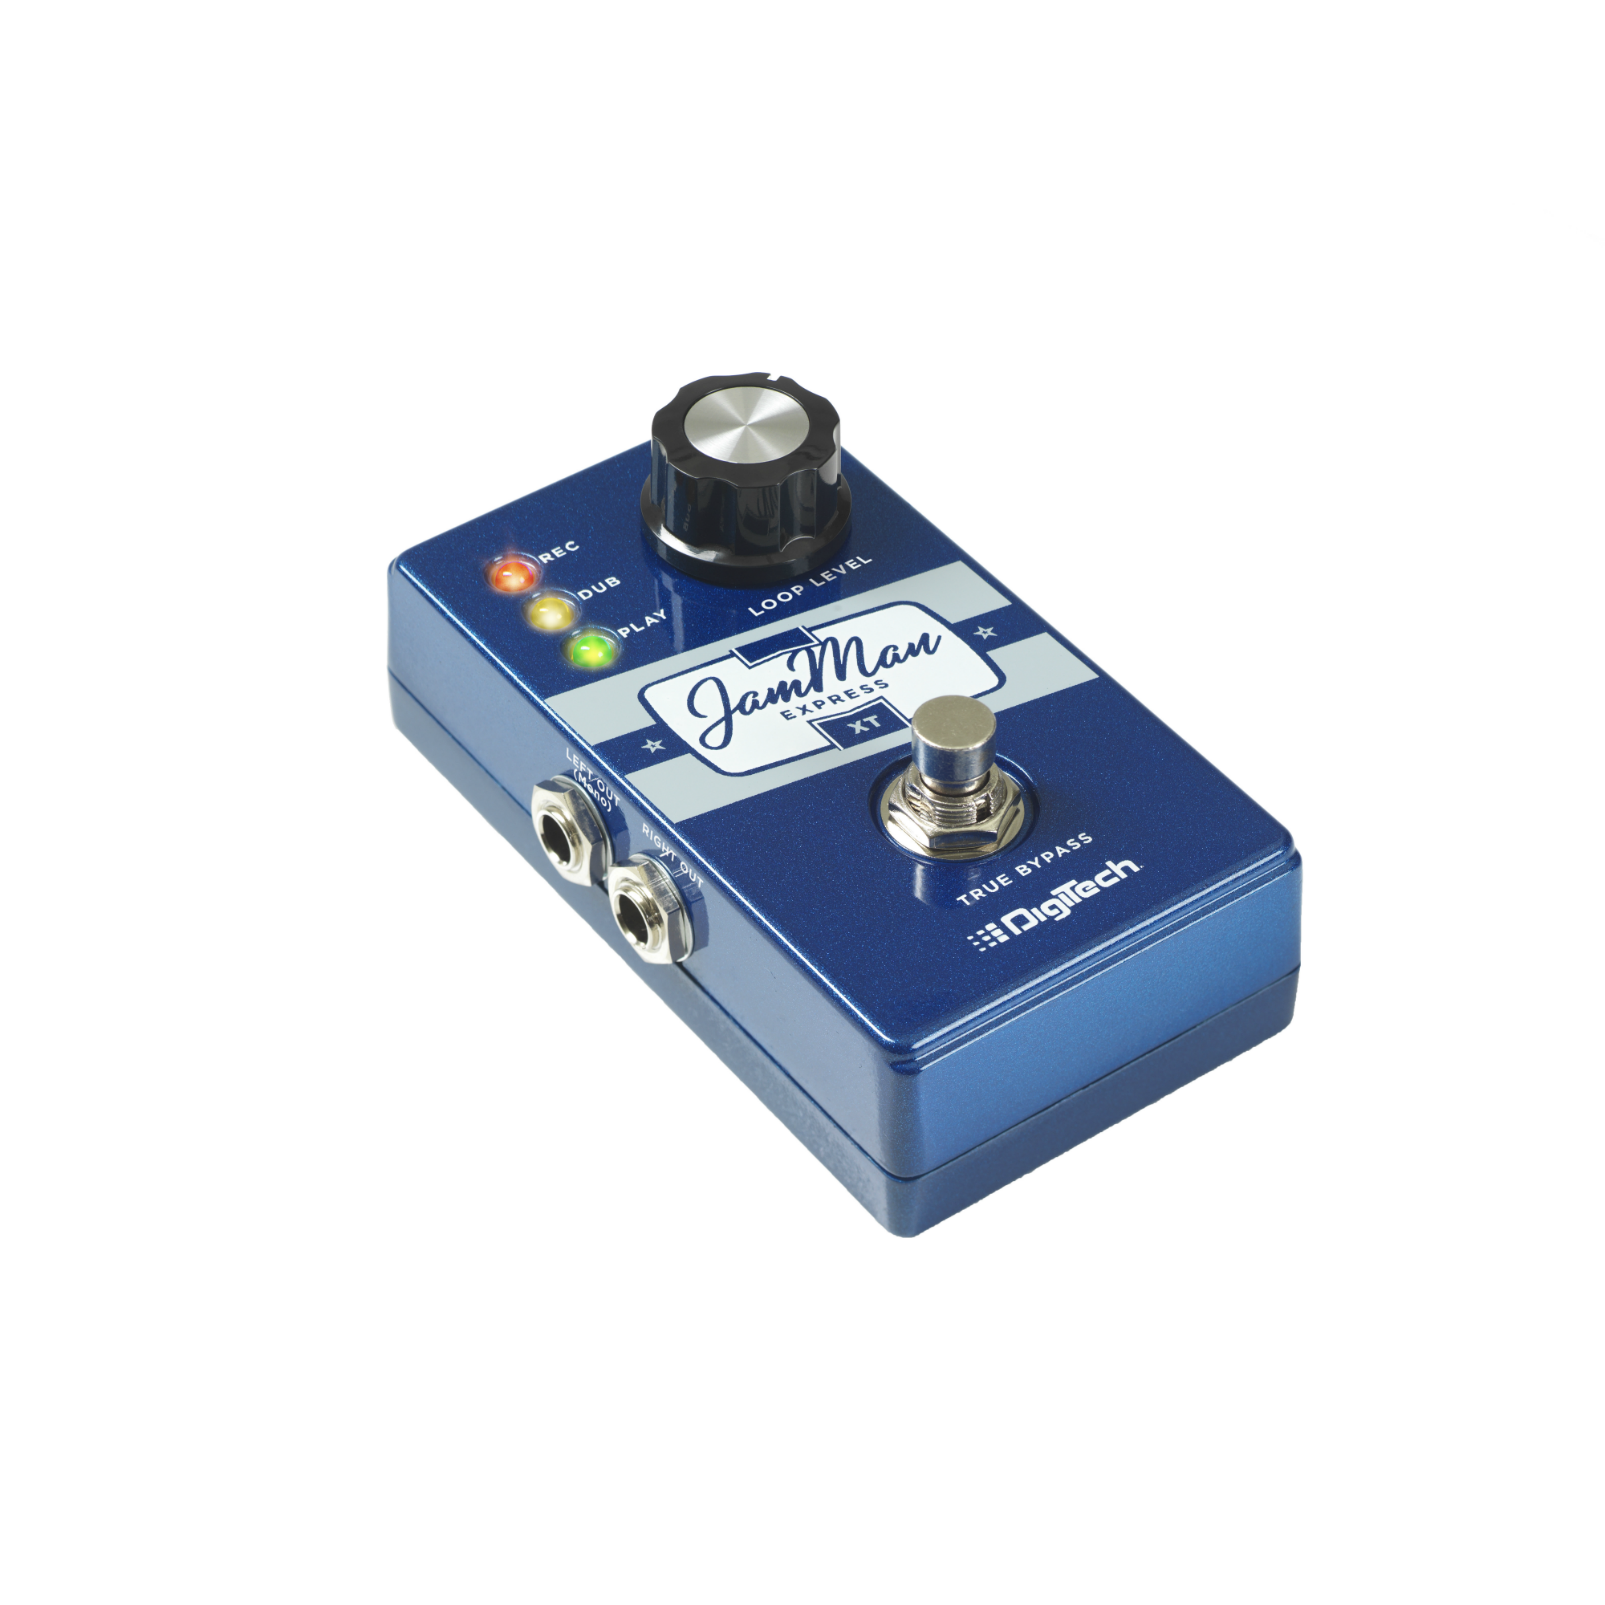 JamMan Express XT (discontinued) - Blue - Compact Stereo Looper with JamSync - Detailshot 1